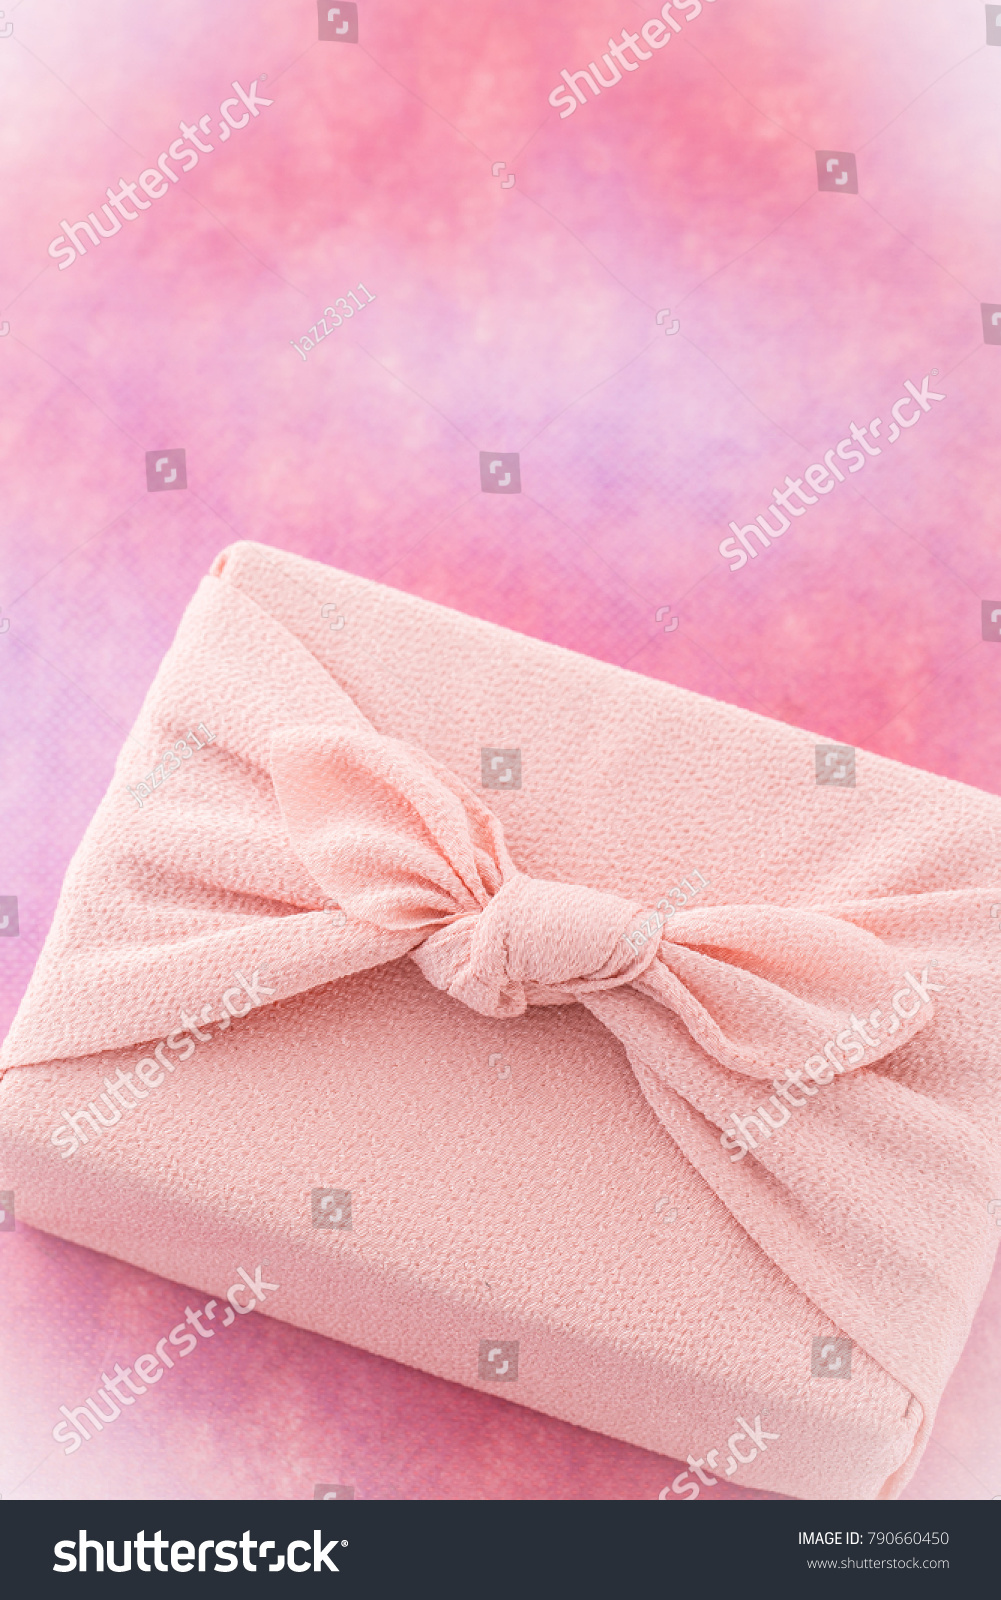 Traditional Japanese Gifts Stock Photo (Edit Now) 790660450